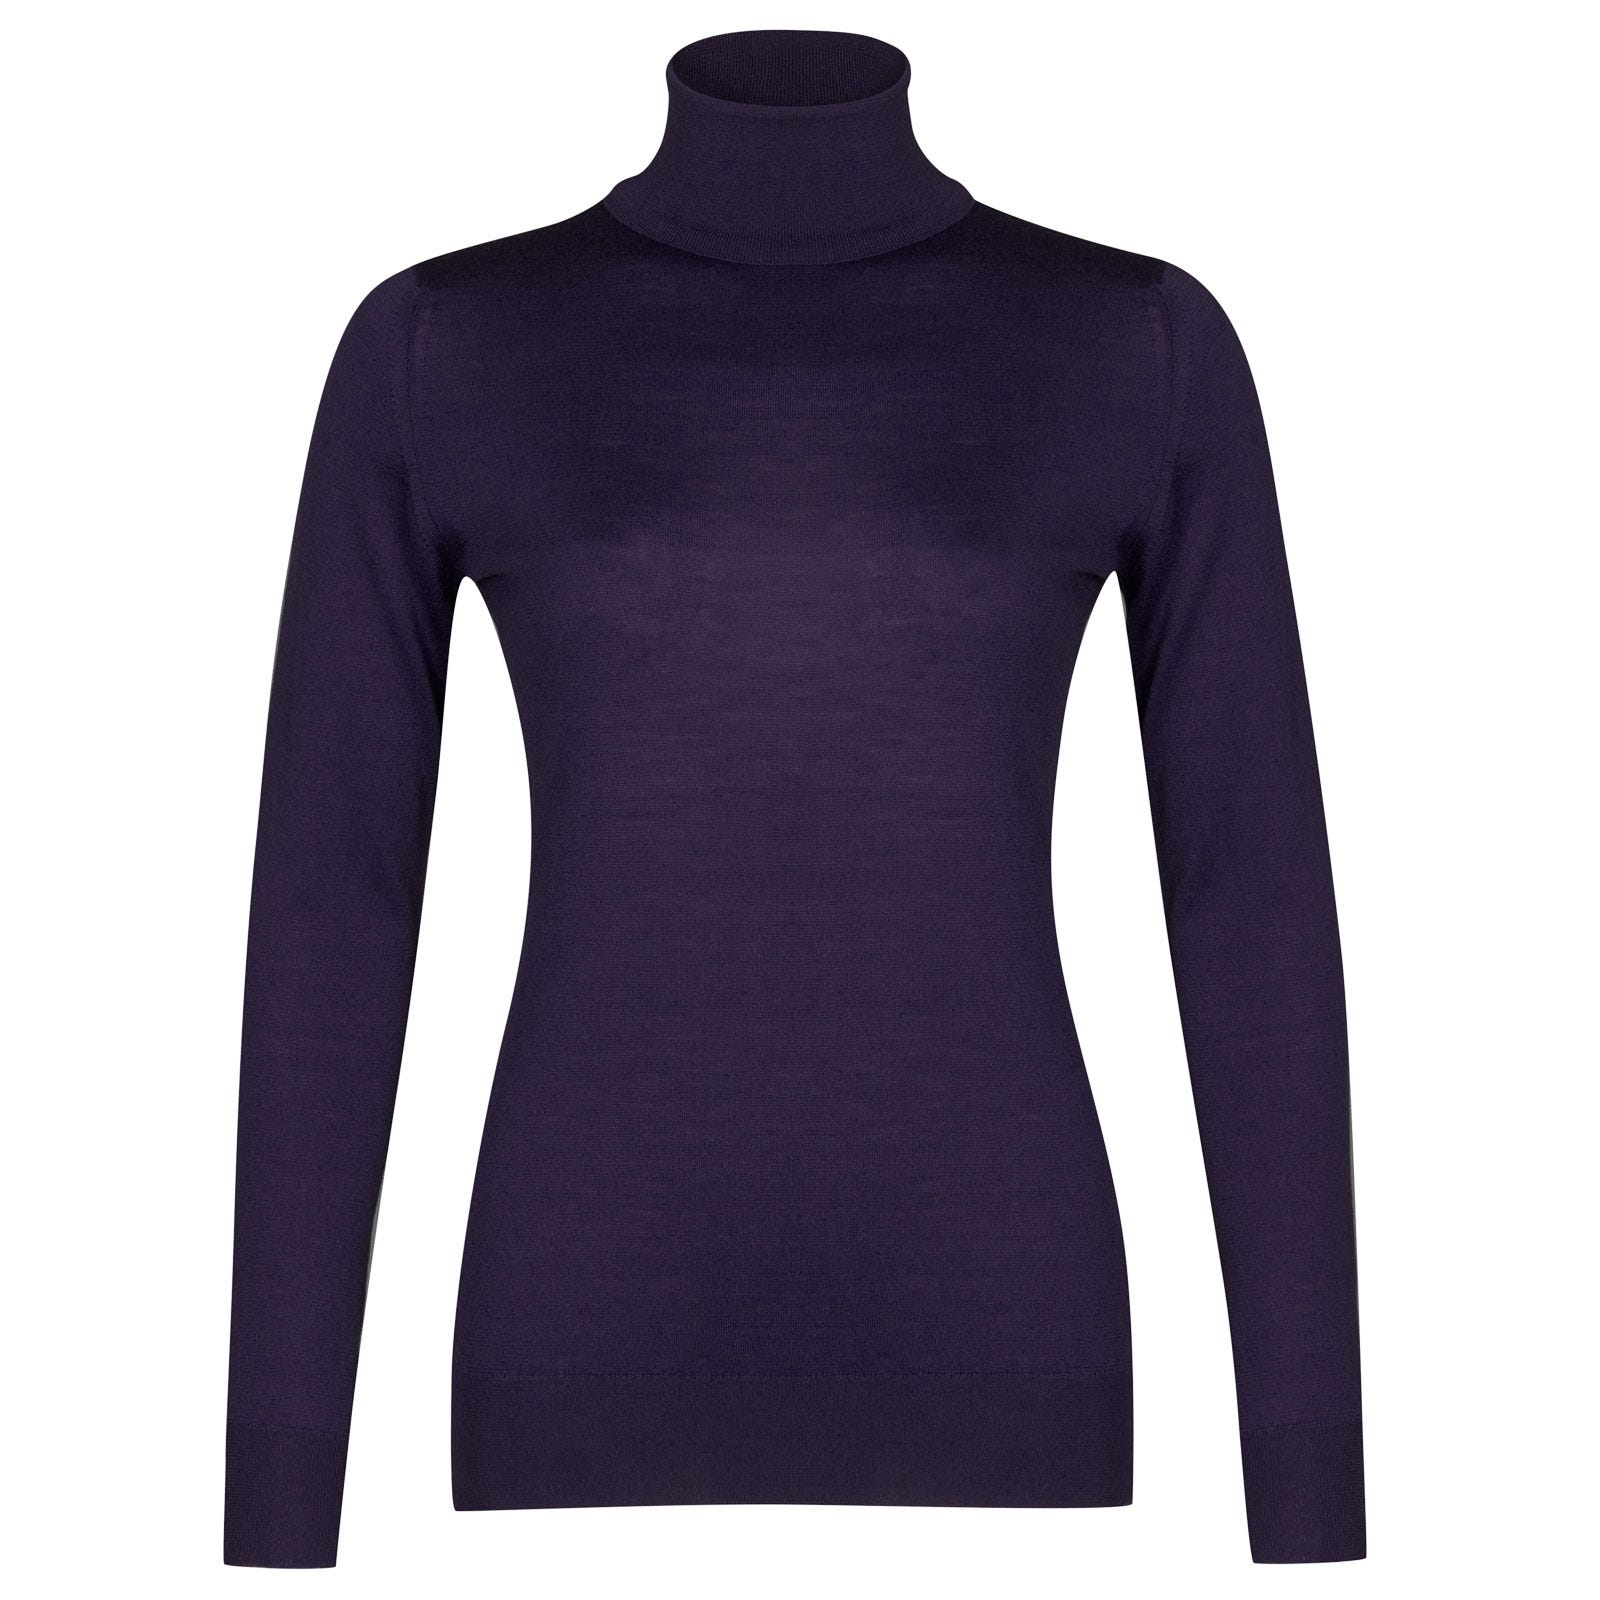 John Smedley Catkin Merino Wool Sweater in Elderberry Purple-M